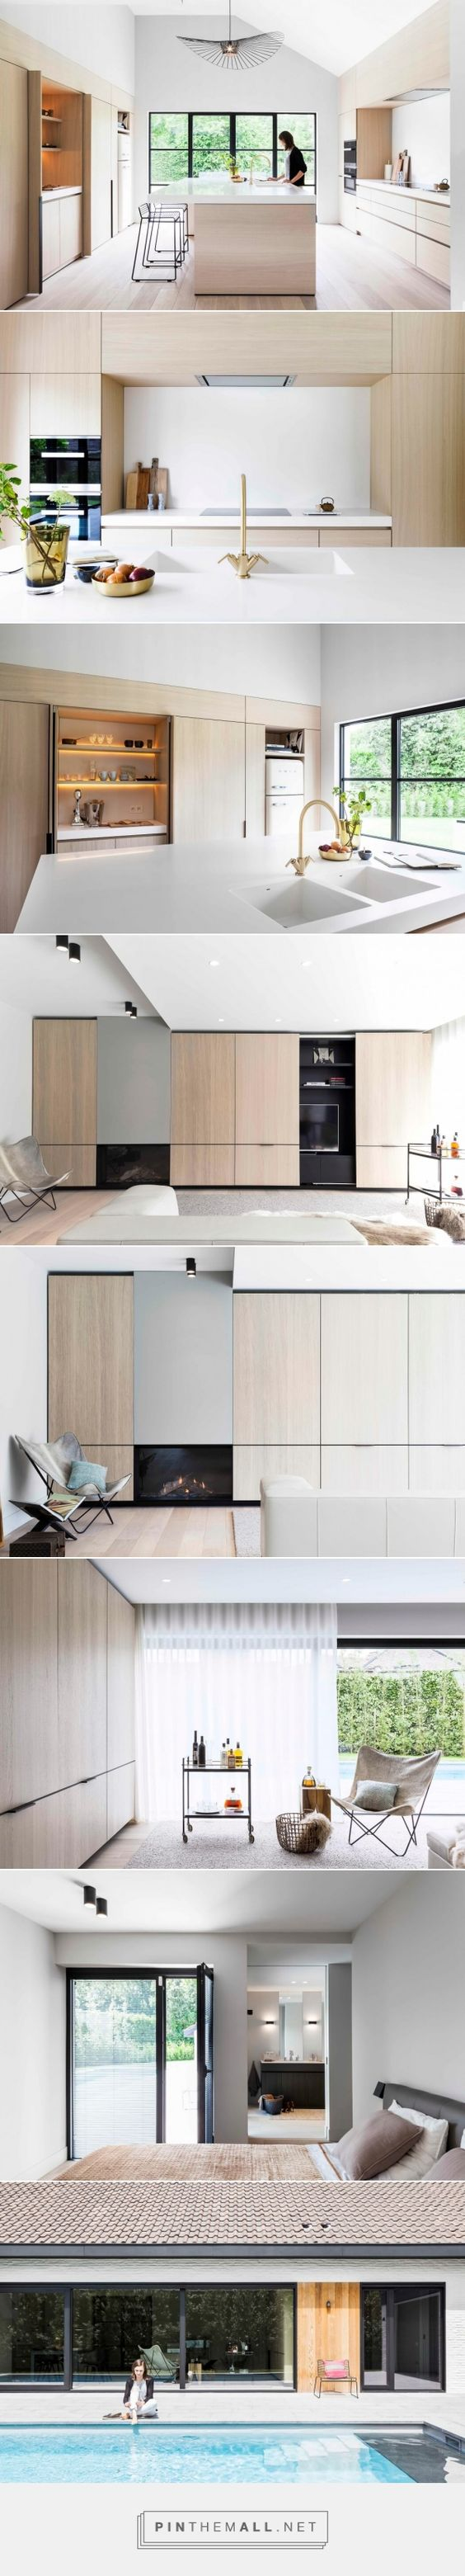 Architects, Projects and Kitchen floor plans on Pinterest